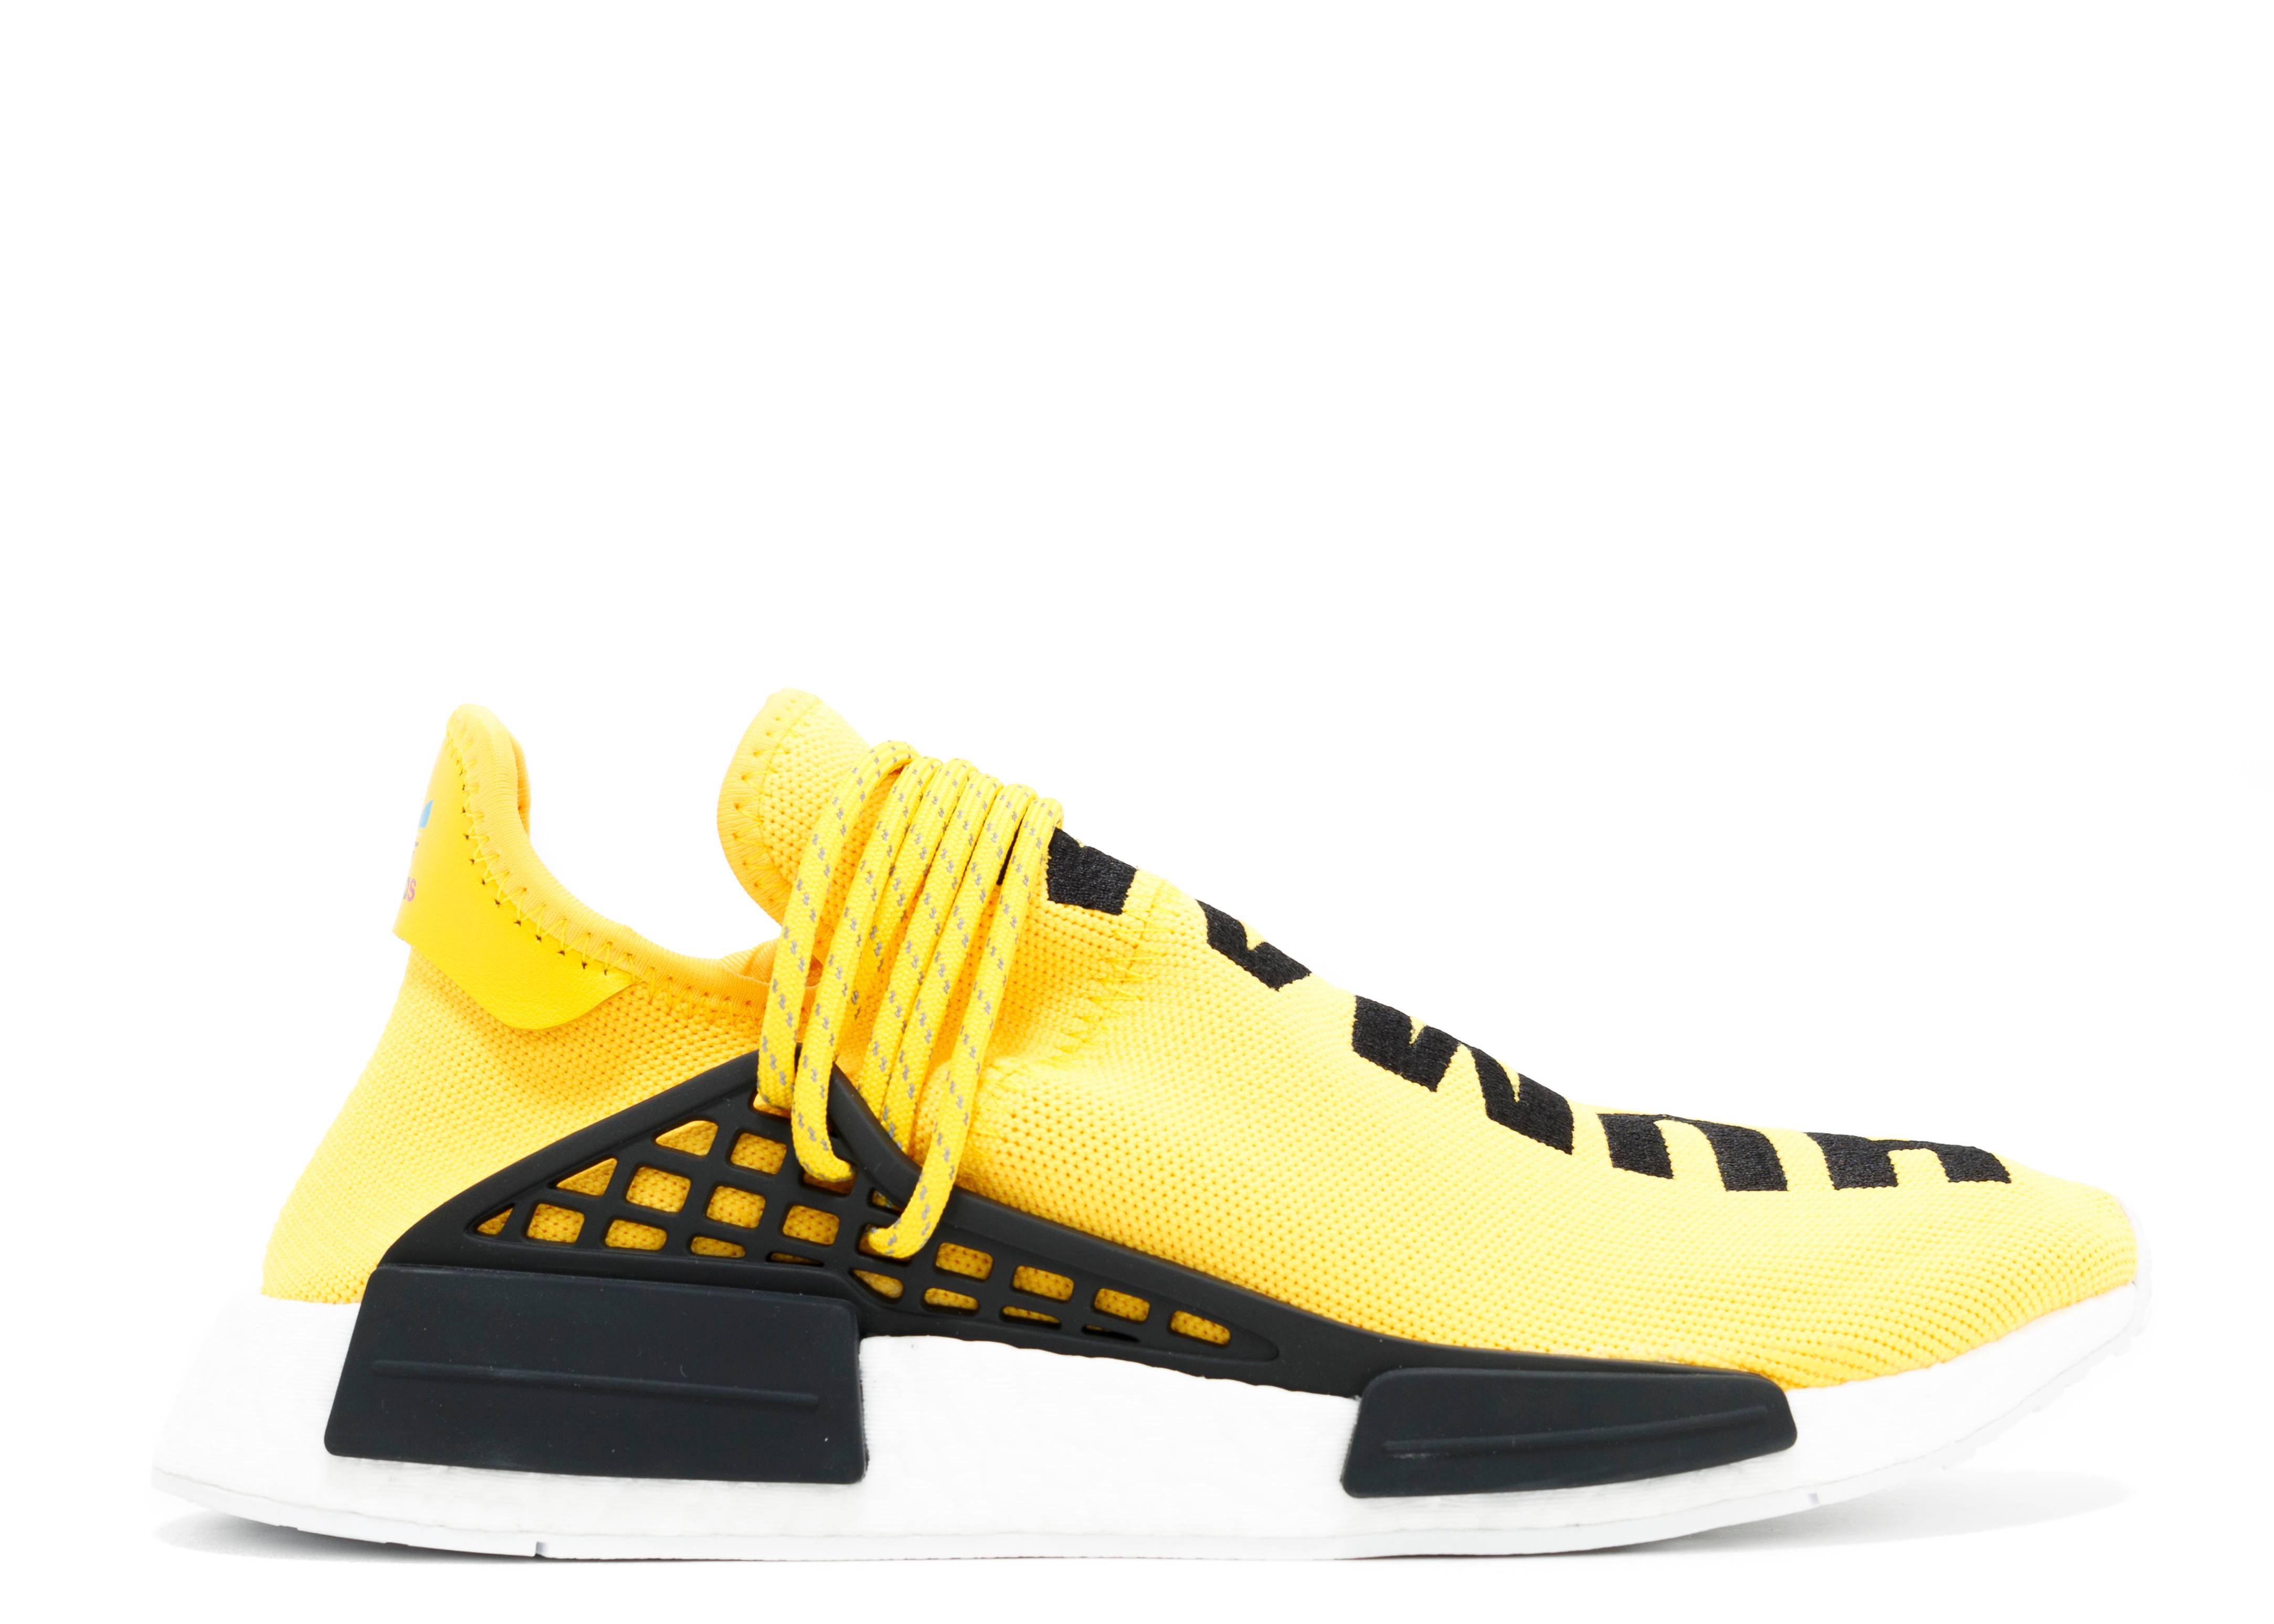 Adidas NMD Pharrell HU Human Race Yellow